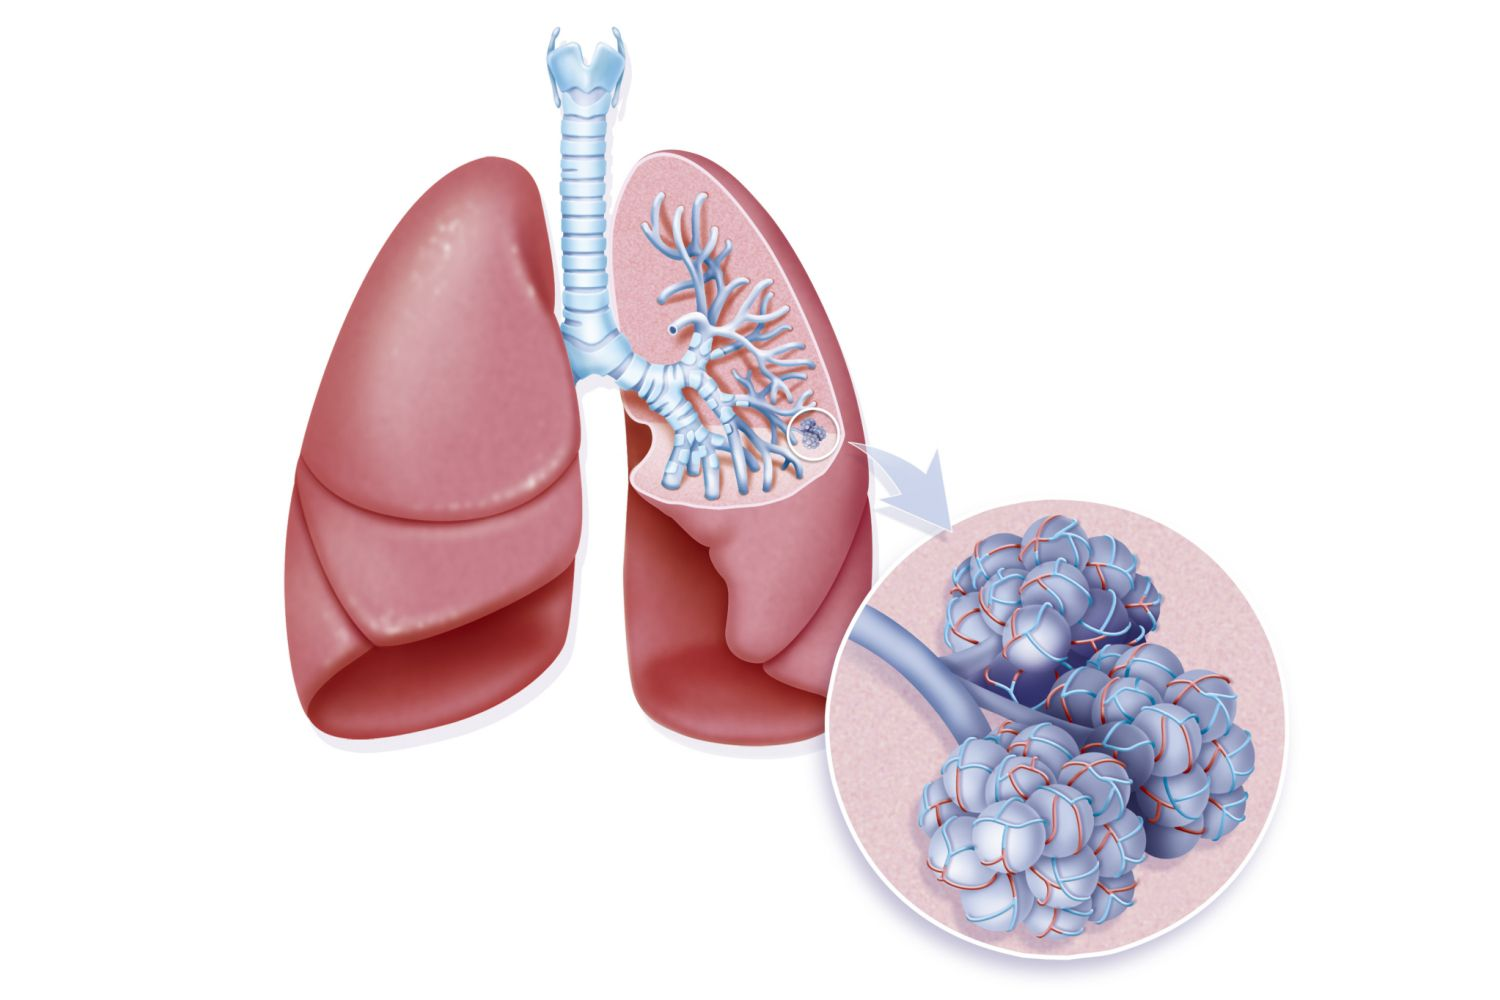 How To Make A Model Of The Lungs